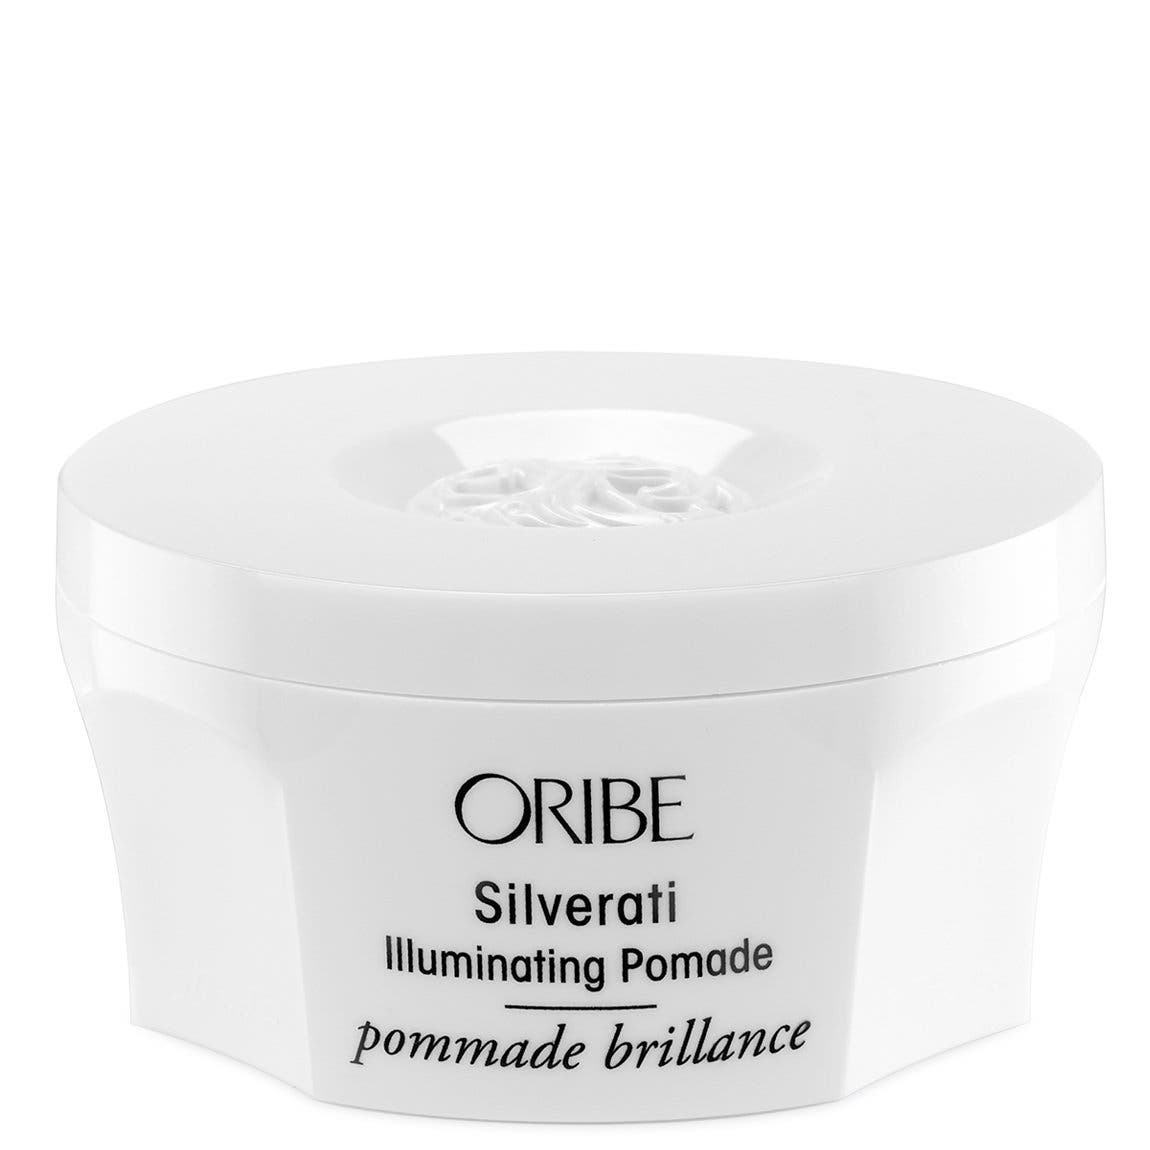 Oribe Silverati Illuminating Pomade - 50ml